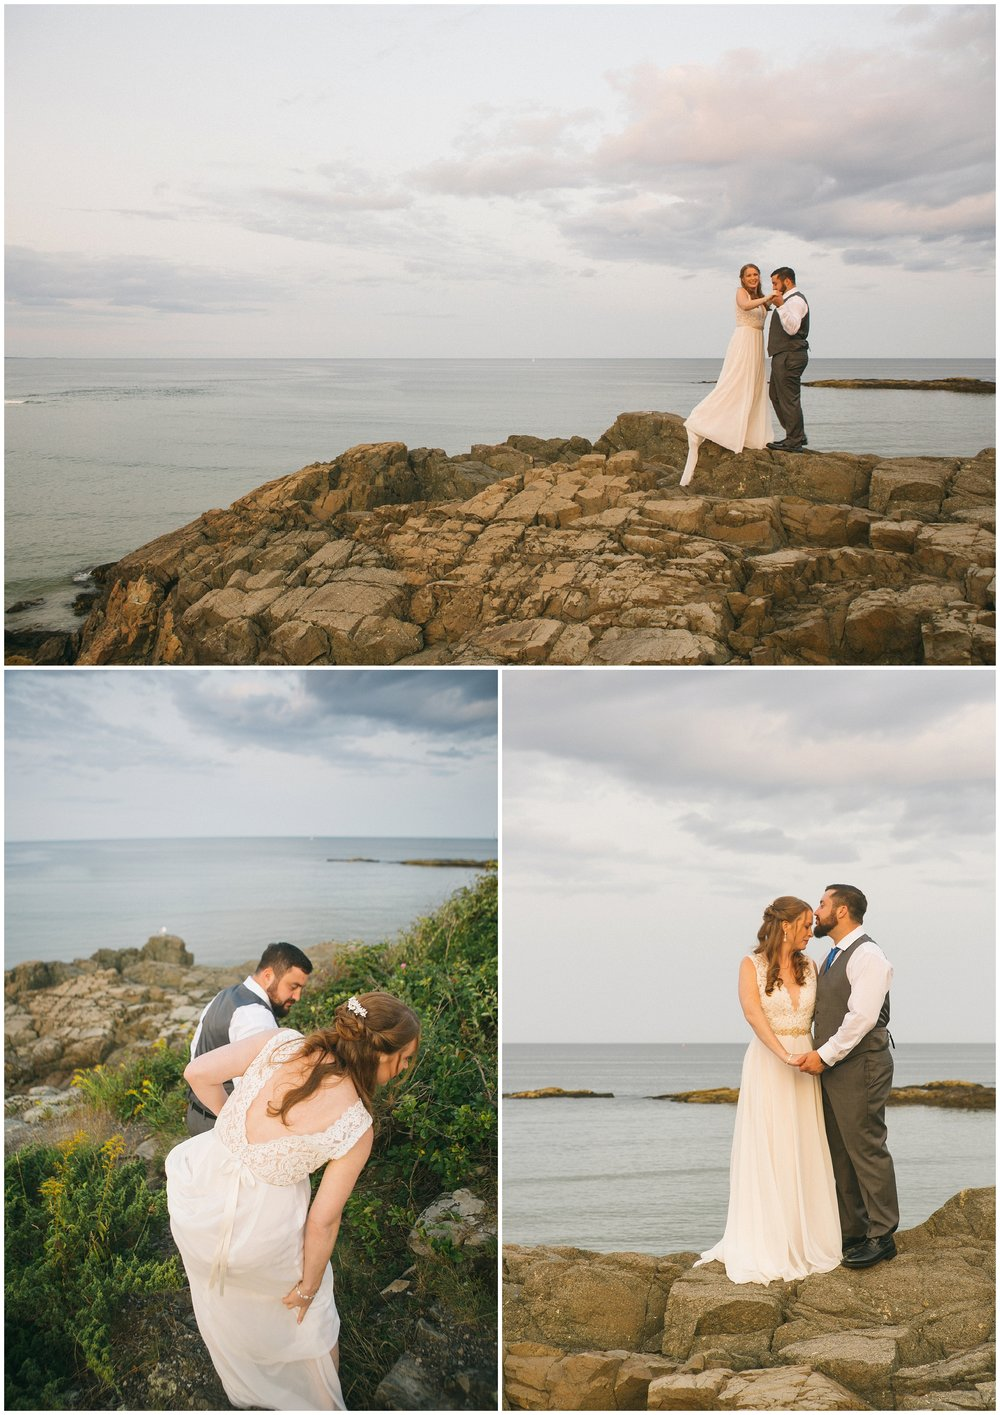 Bride and Groom on cliffs overlooking the Atlantic in Ogunquit, ME by the Beachmere Hotel. Photography by Ryan Richardson Photography, a Boston Wedding Photographer.